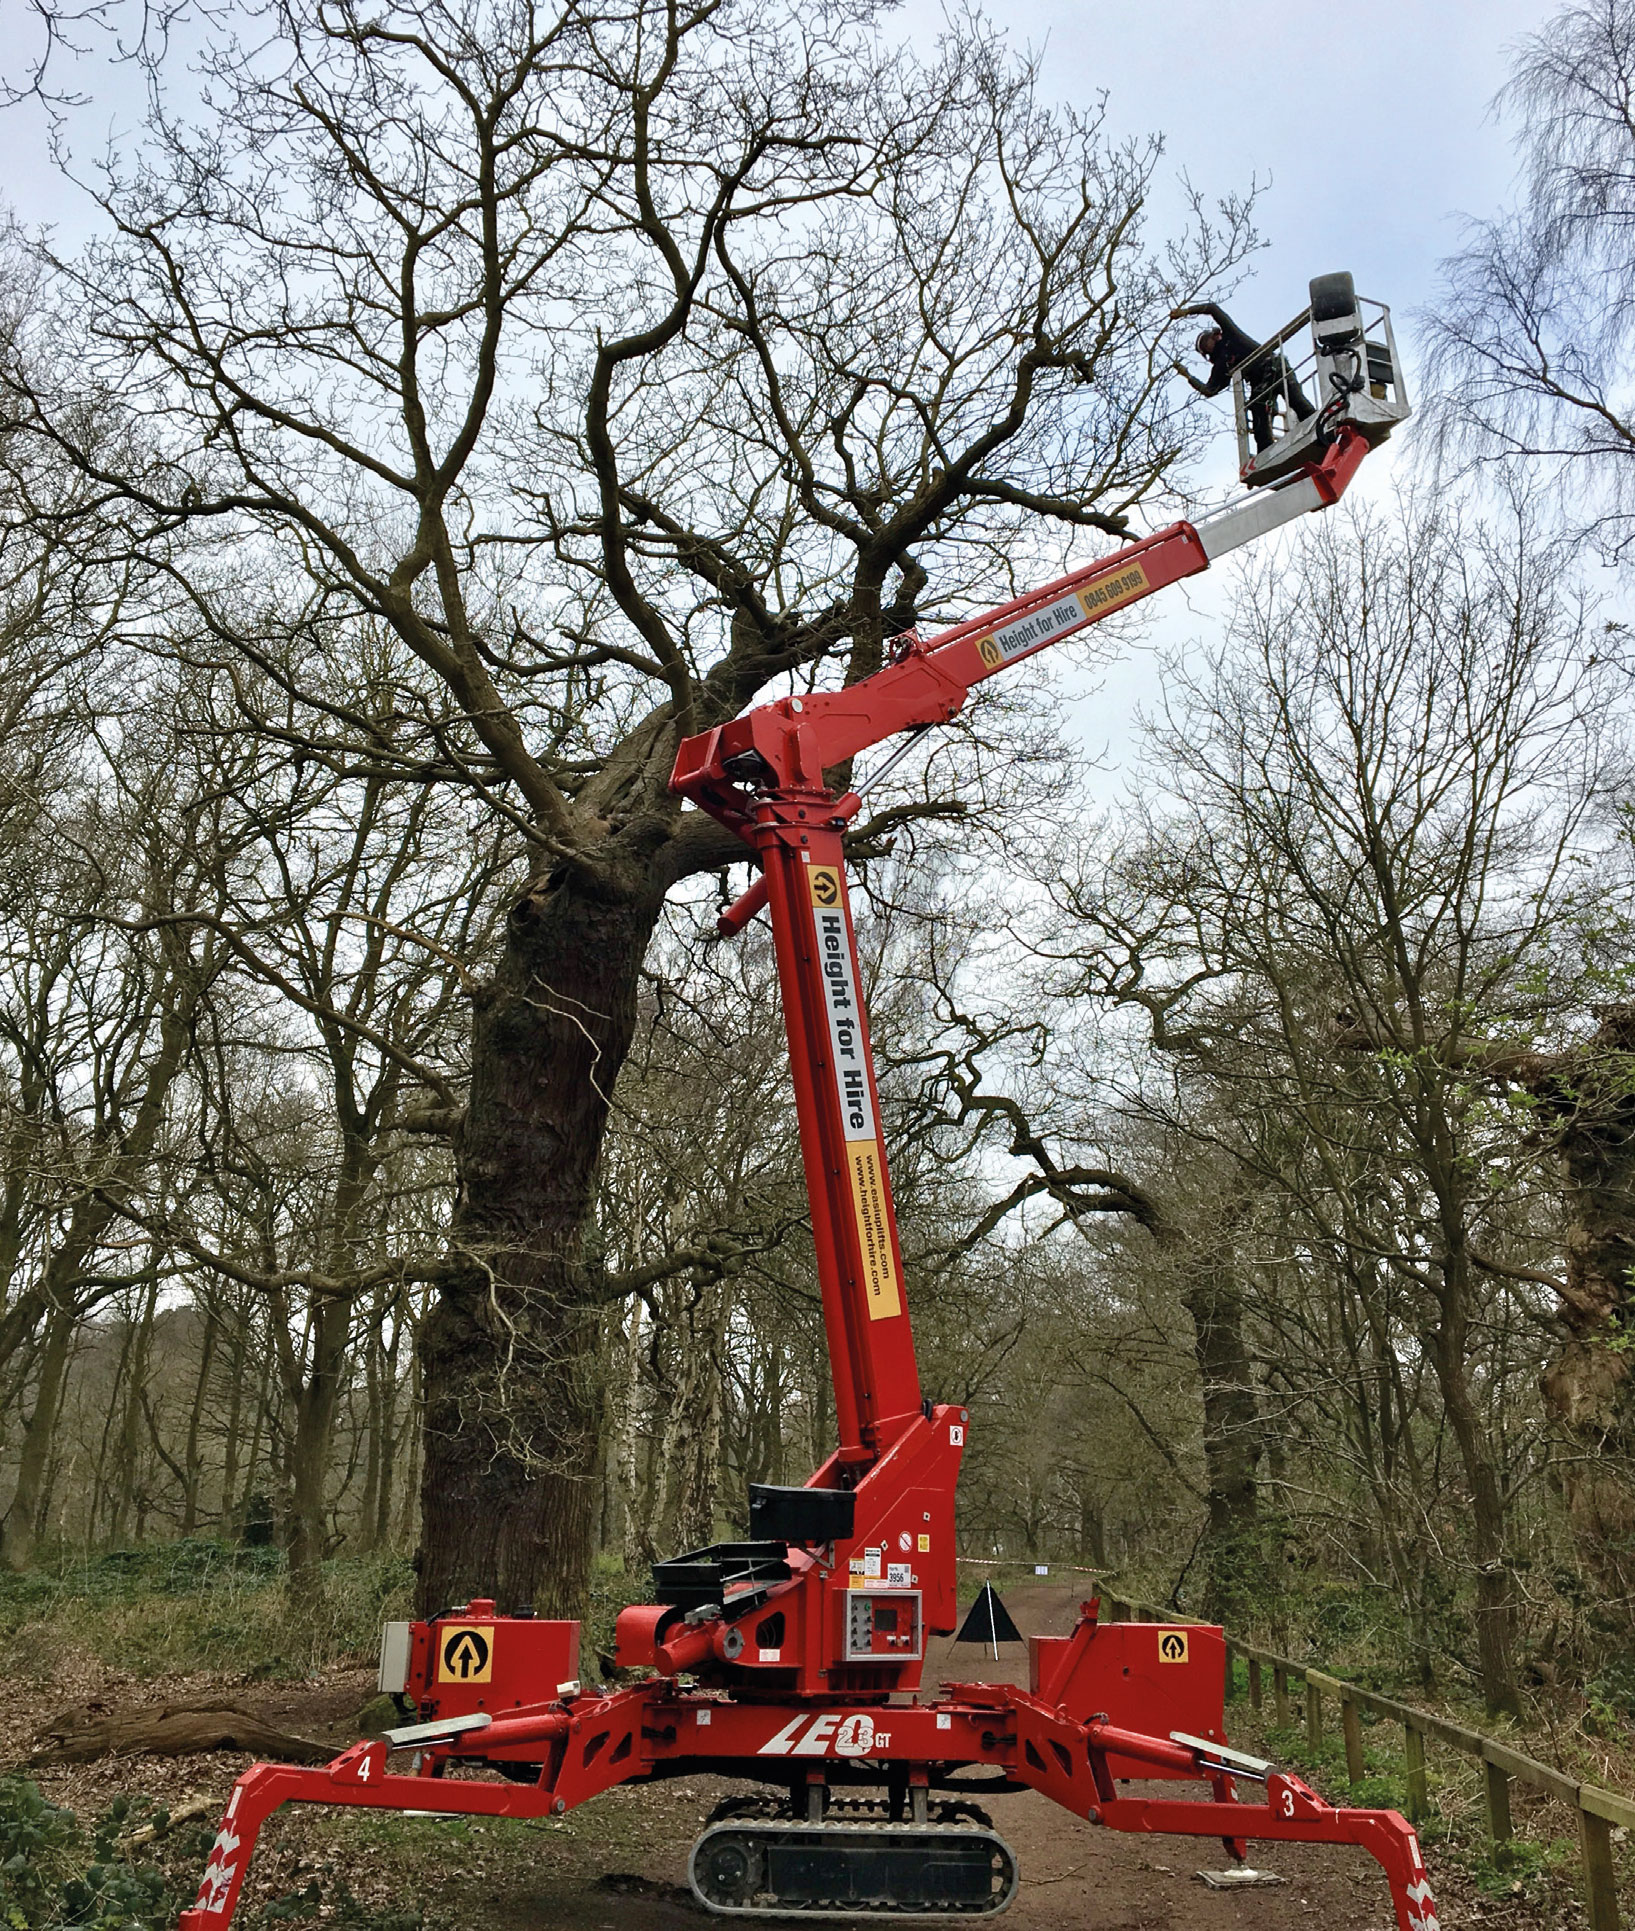 Using the reduction via thinning technique at Sherwood Forest. Perhaps an option instead of retrenchment pruning?